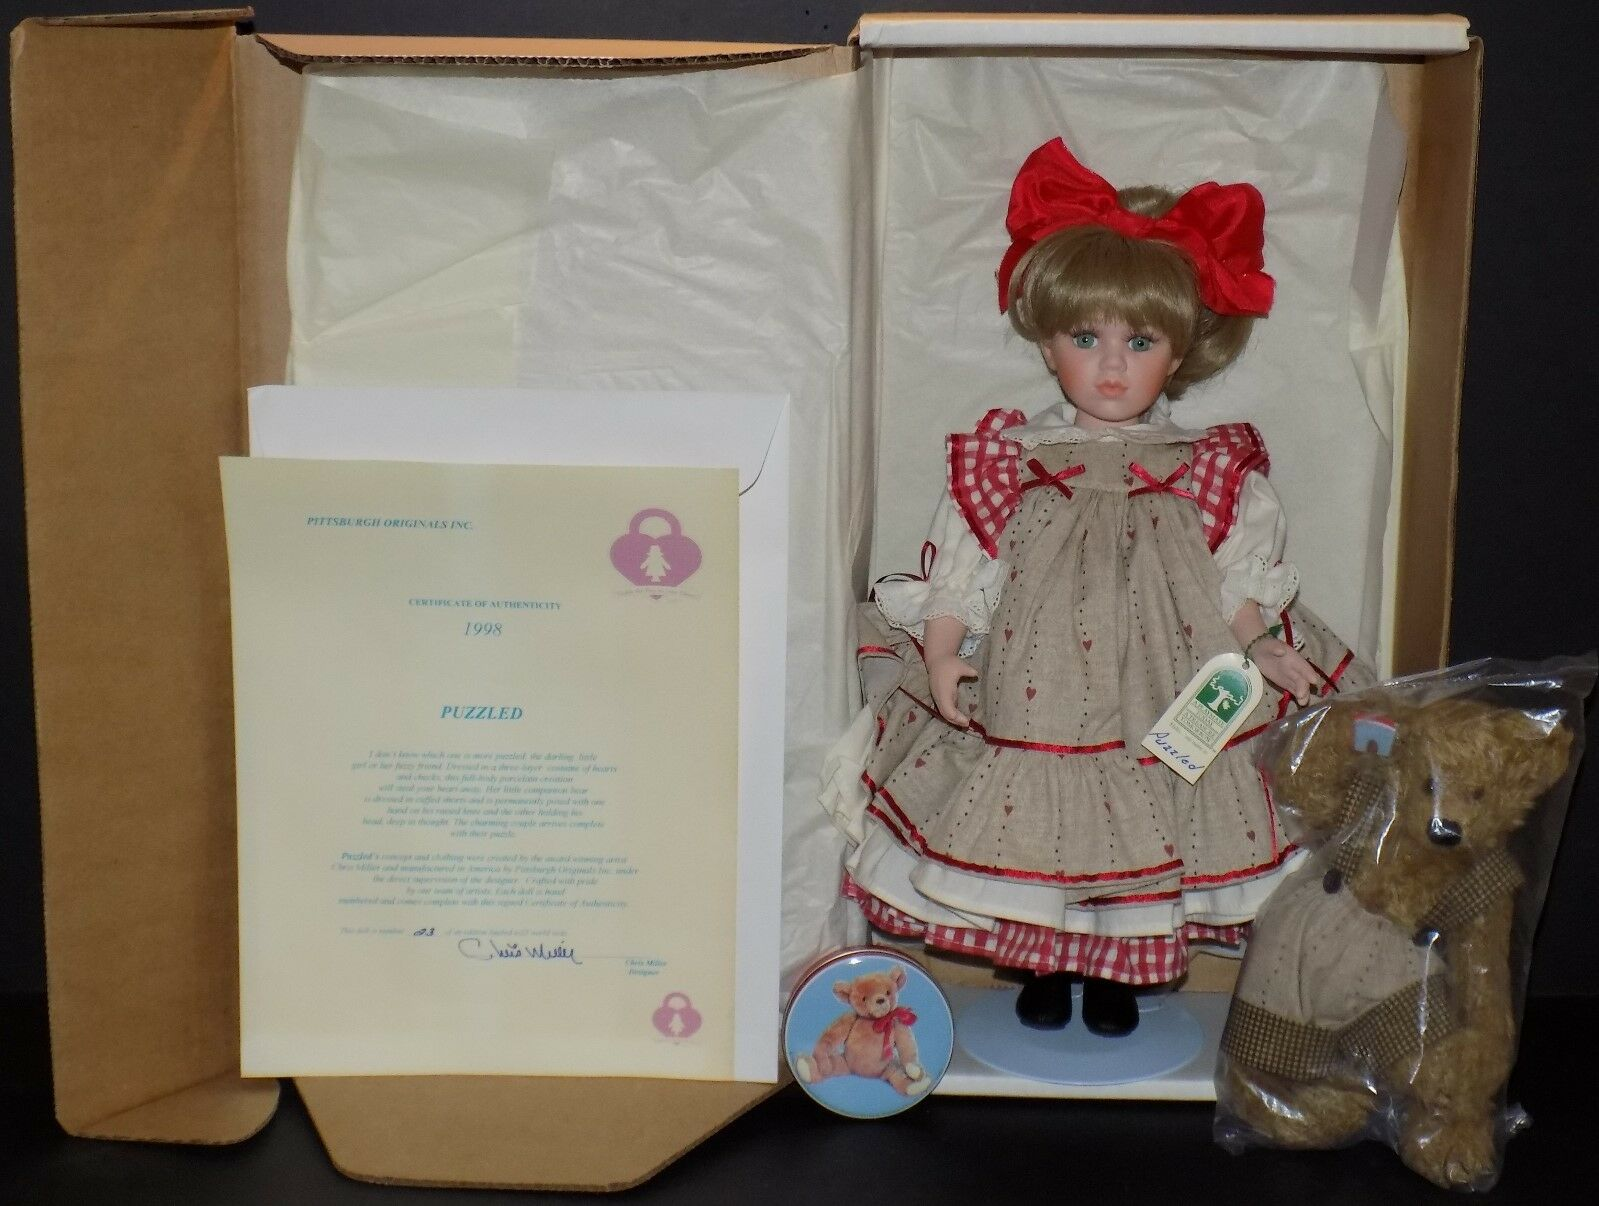 Fashion, Character, Play Dolls Ashton Drake Porcelain Doll The Tin Man Wizard Of Oz Collection 1994 Nib Pure White And Translucent Generous Rare